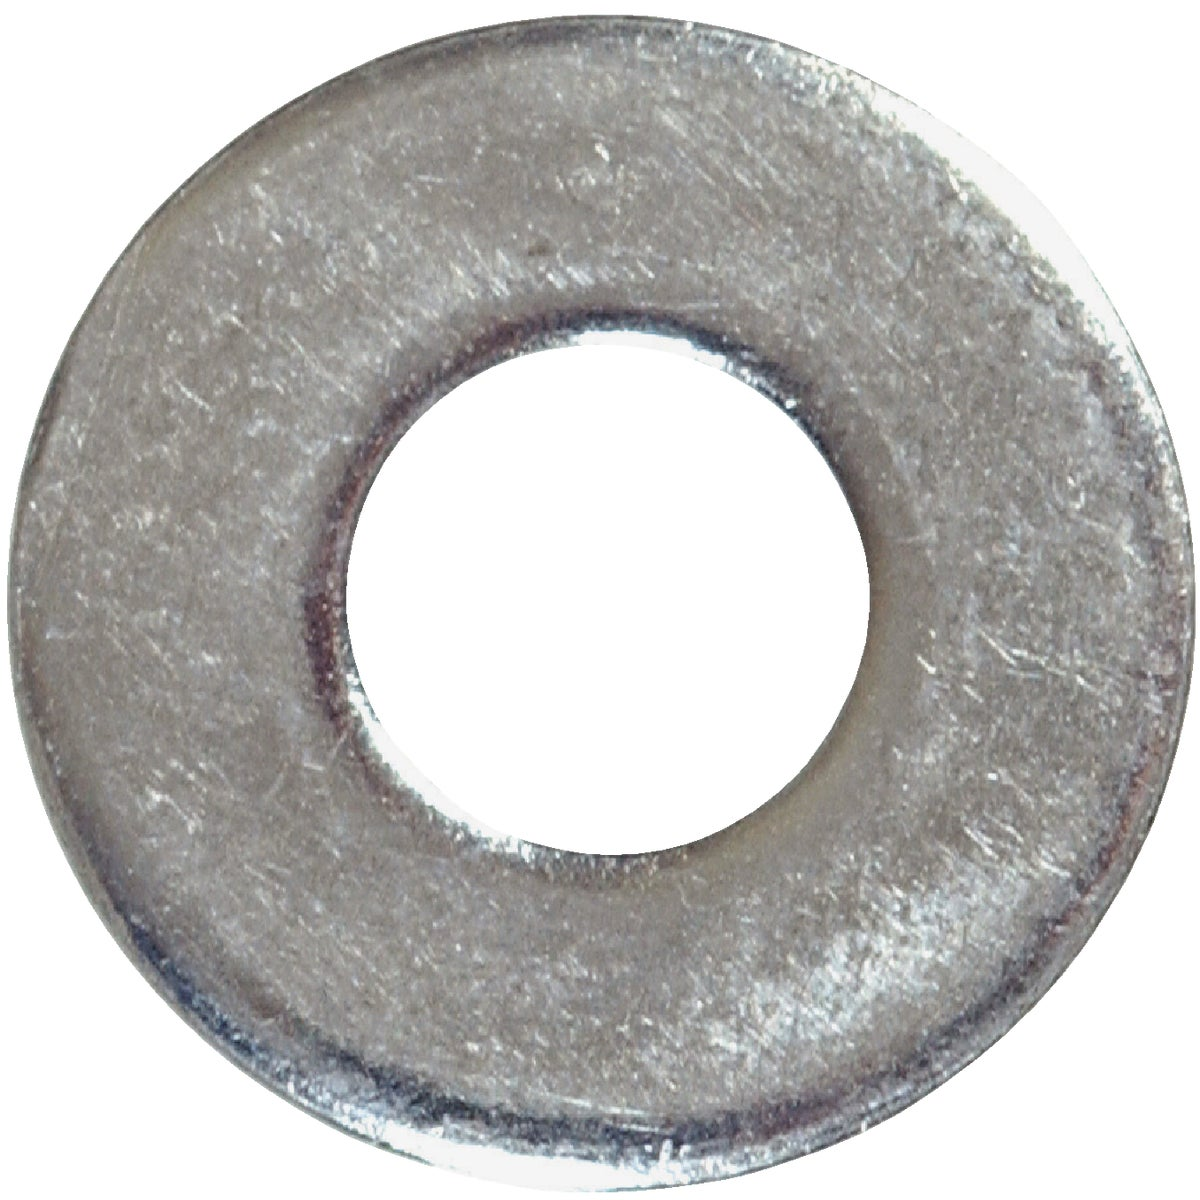 "5LB 1/4"" USS FLT WASHER"